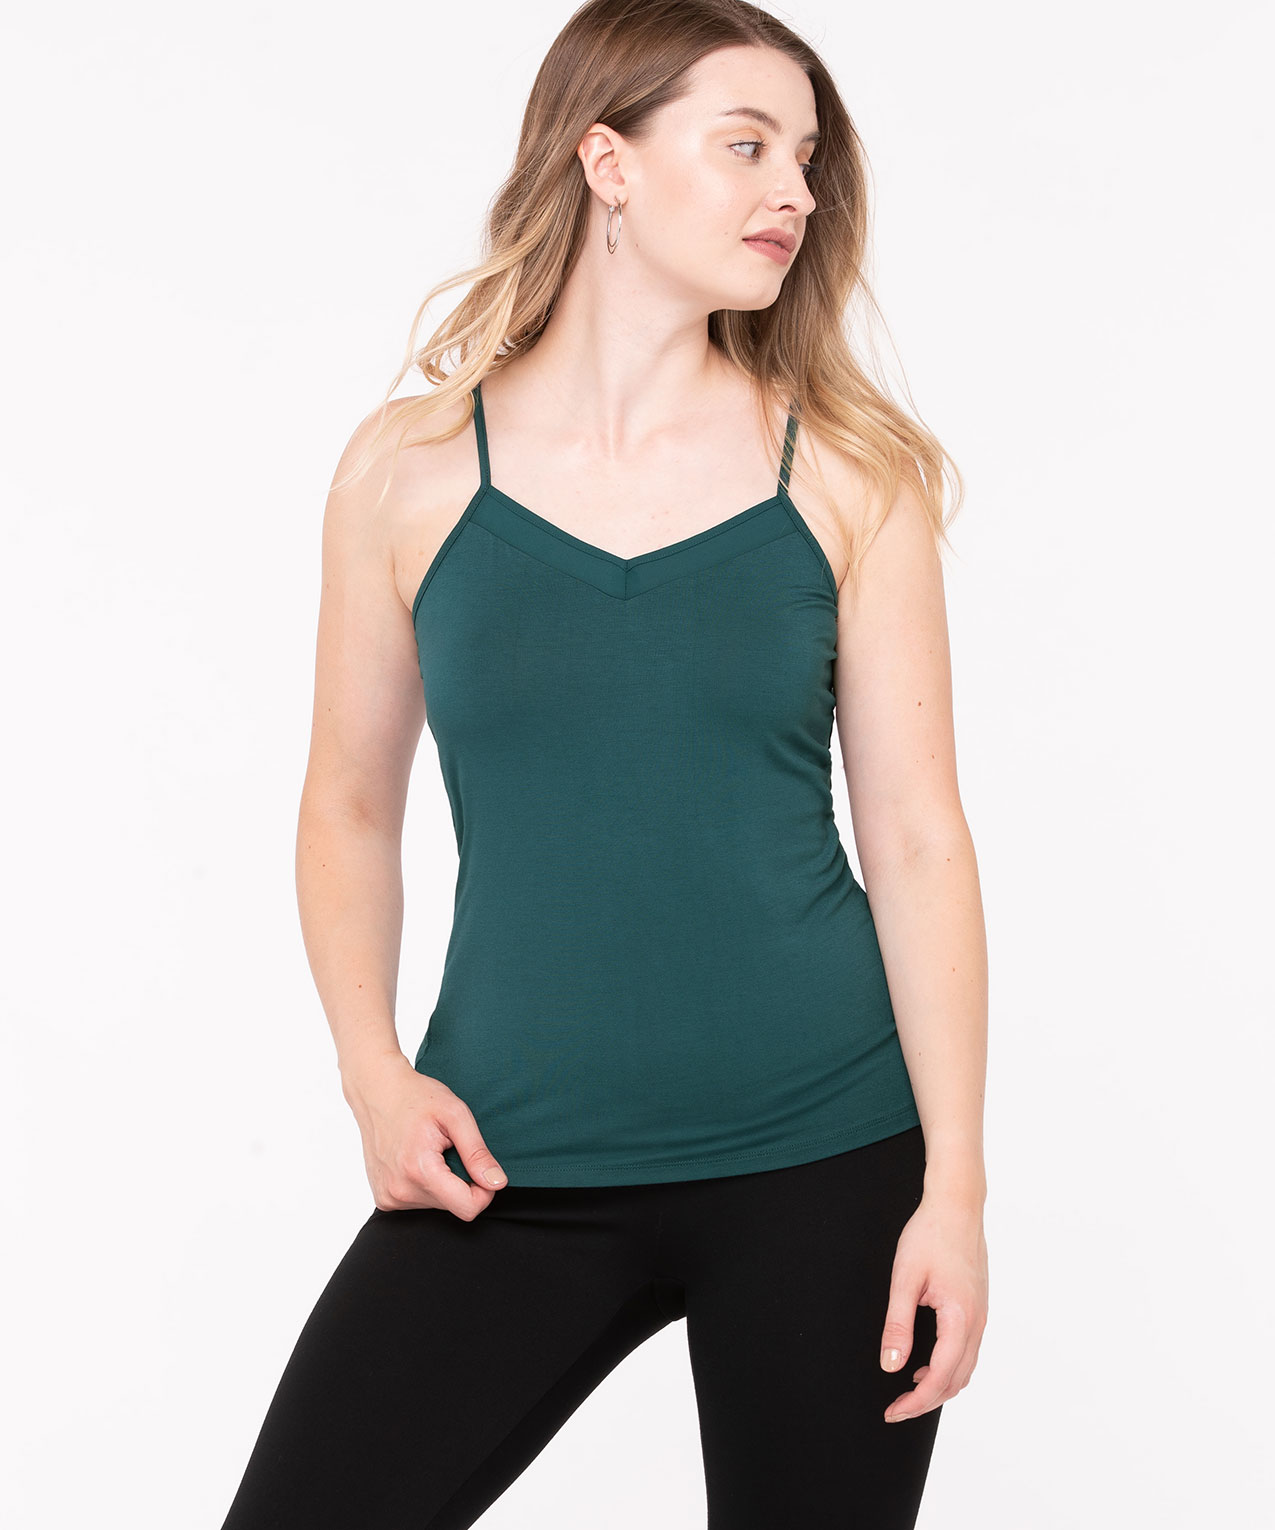 Chiffon Inset Strappy Cami, Teal, hi-res